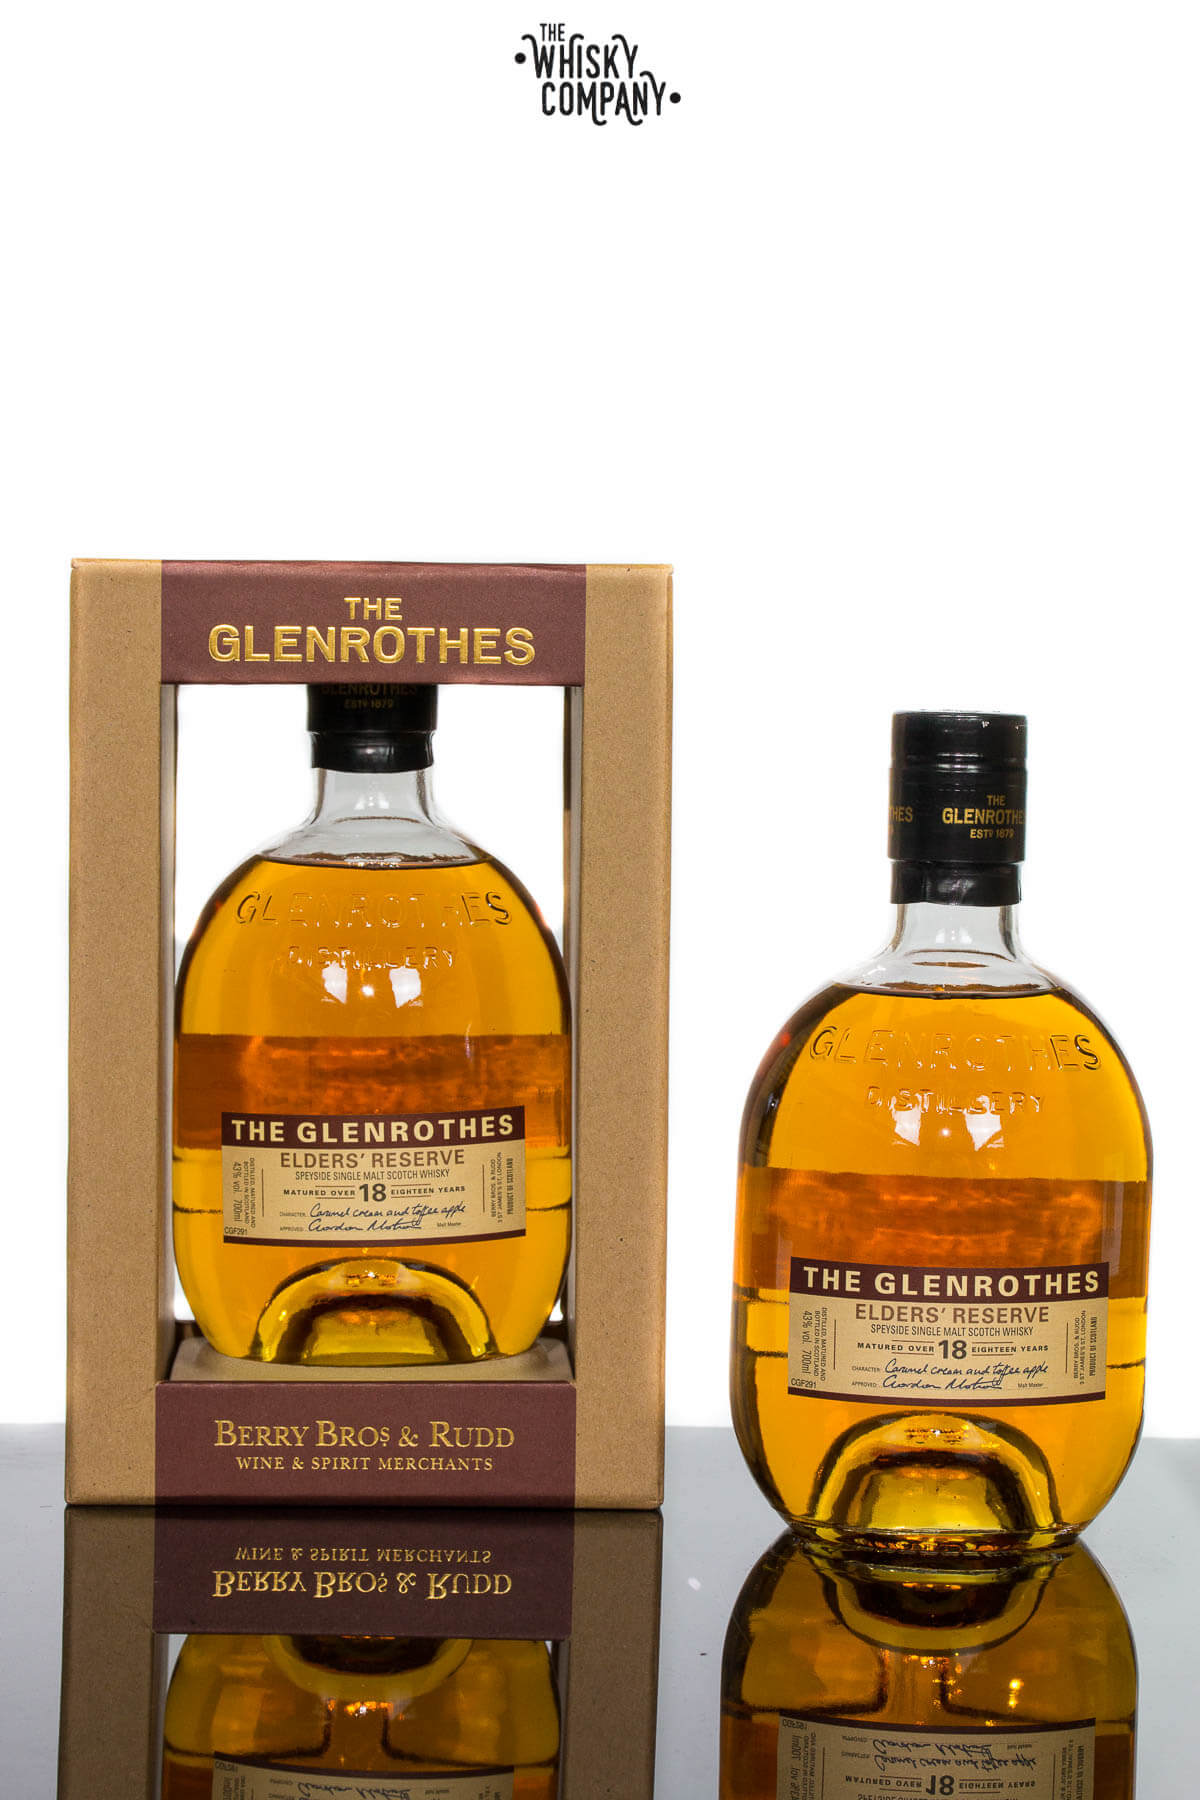 Glenrothes Elders Reserve 18 Year Old Single Malt Scotch Whisky (700ml)